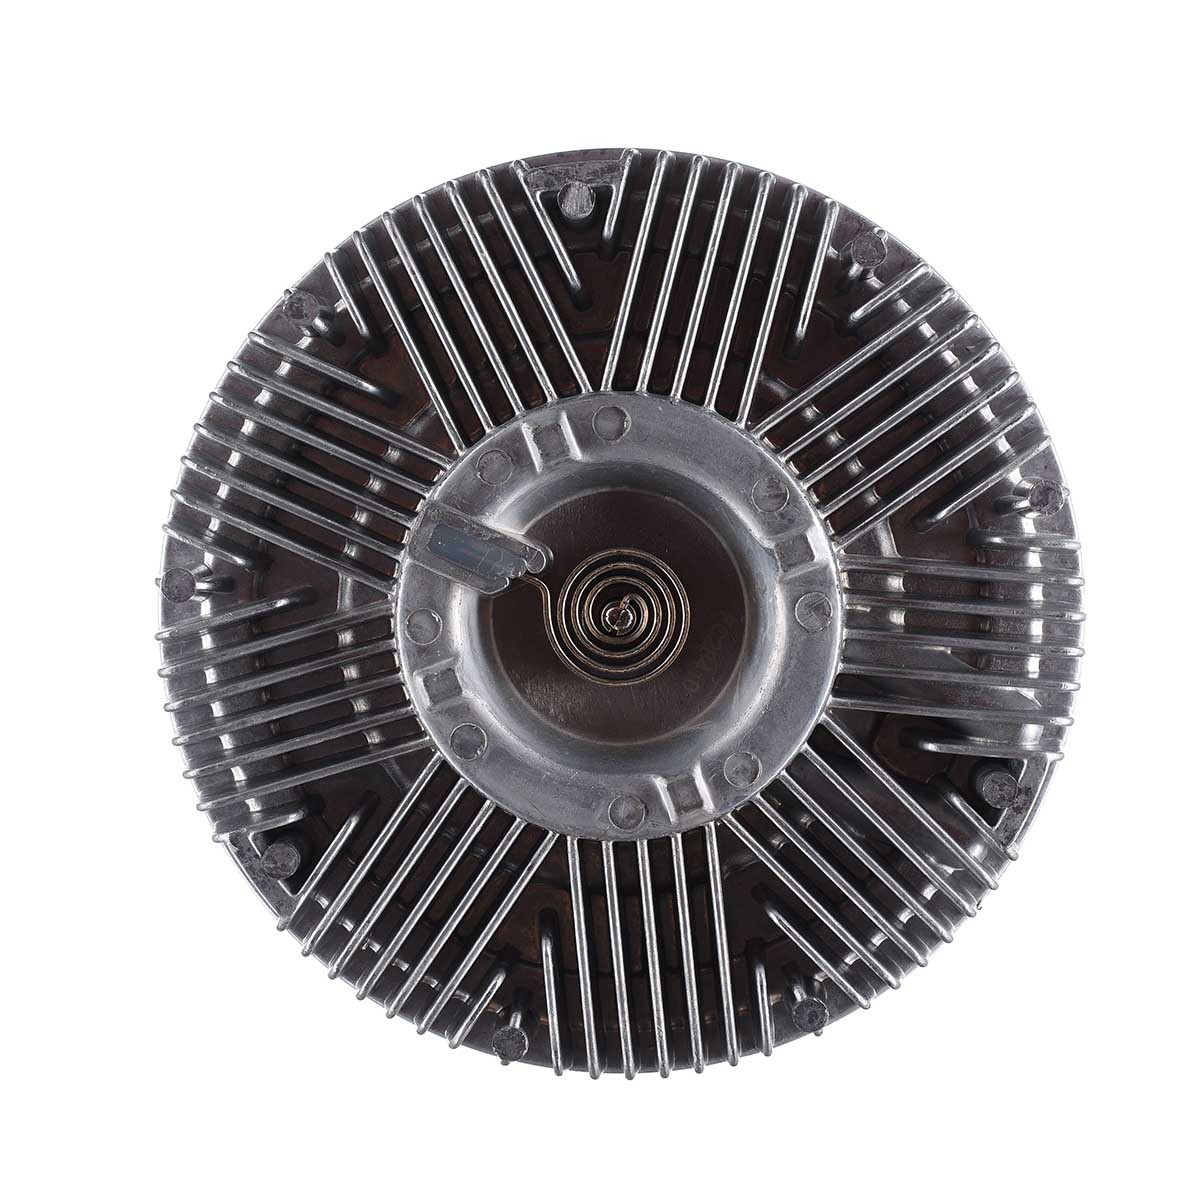 small resolution of cooling fan clutch for ford explorer 1996 2001 mercury mountaineer 1997 1998 1999 2000 2001 v8 5 0l f67z8a616na 2841 ohv engine in fans kits from